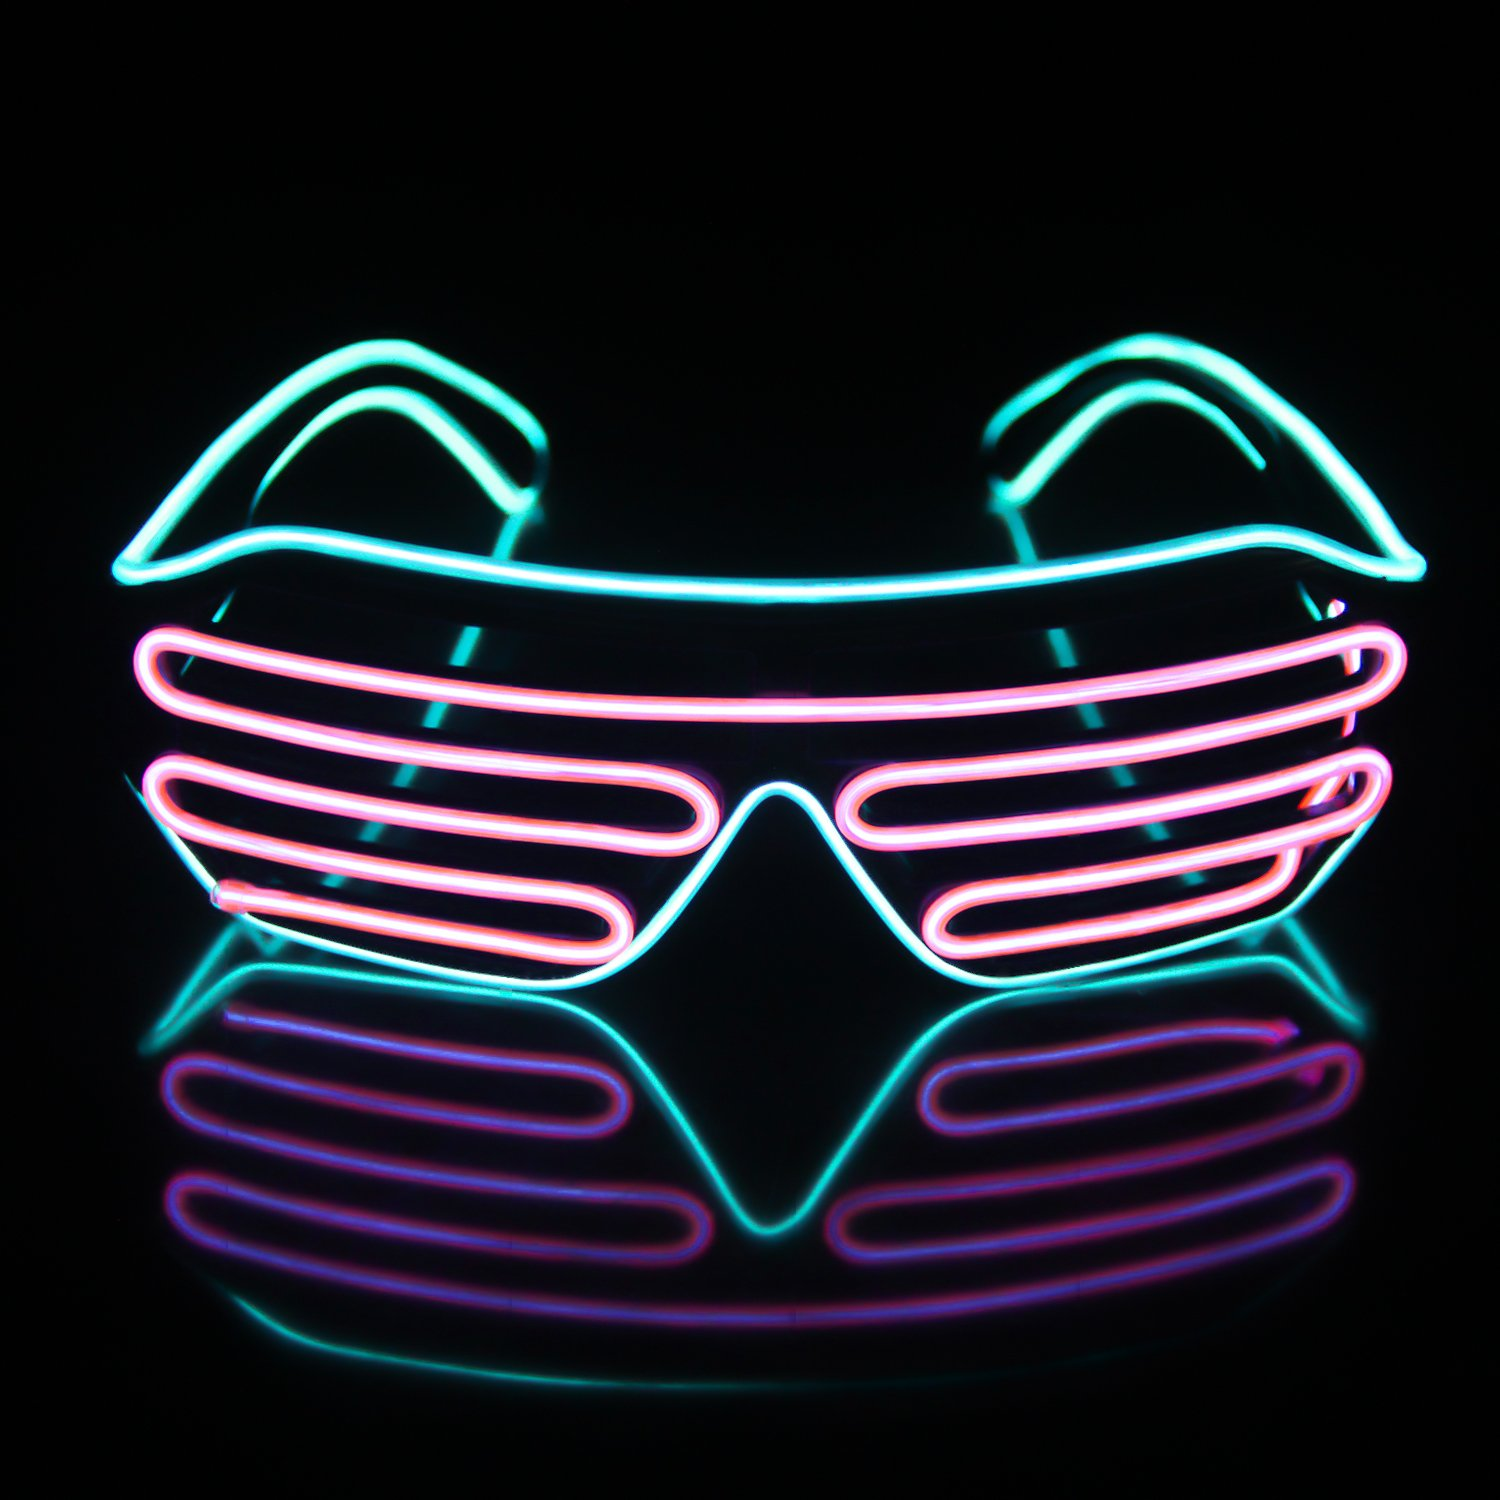 Light Up EL Wire Neon Shutter Glasses Flashing LED Rave Sunglasses for 80s, EDM, Parties Decorations(Transparent Blue+Pink)